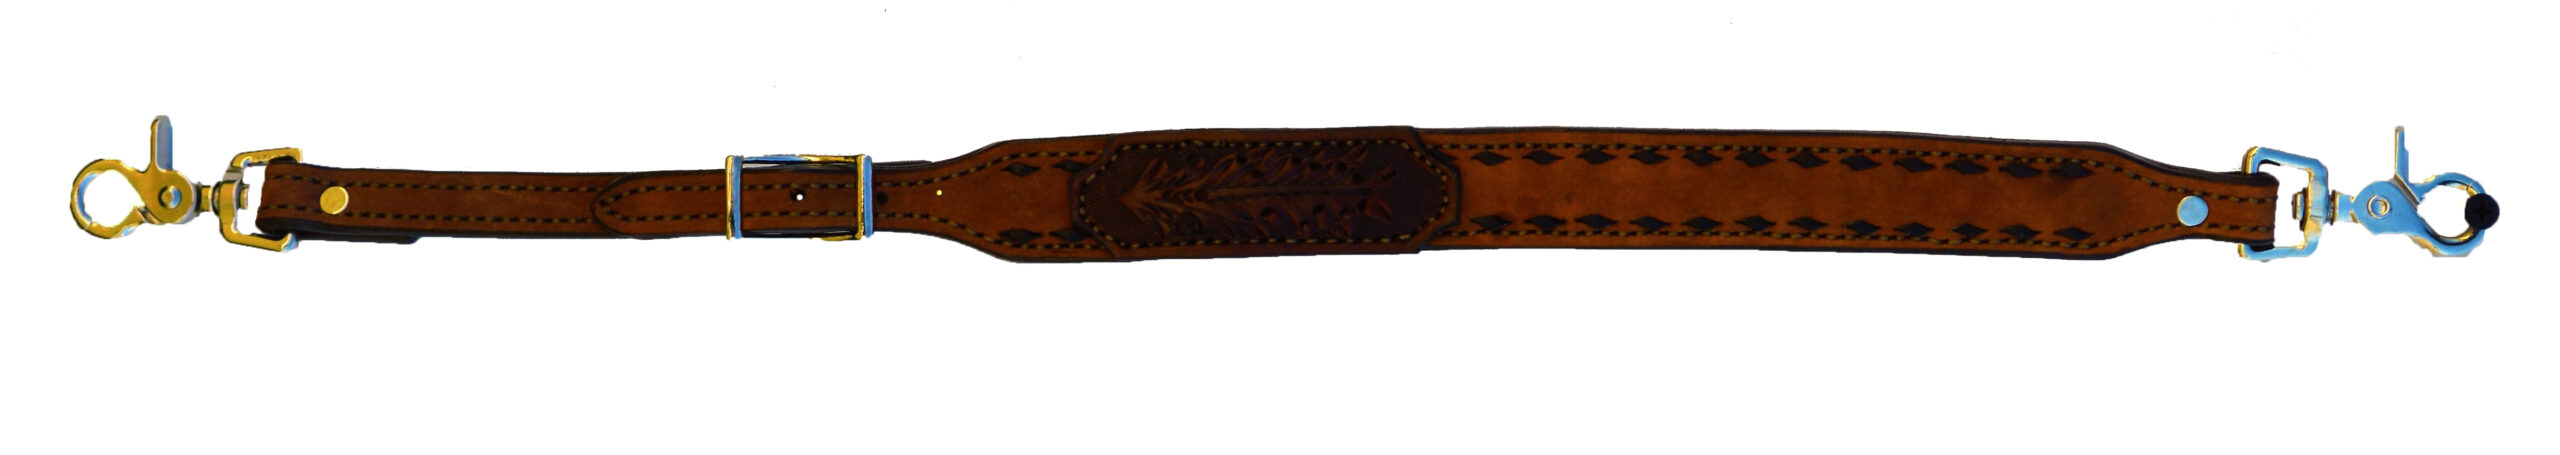 200-AO WITHER STRAP WITH TOOLED PATCH